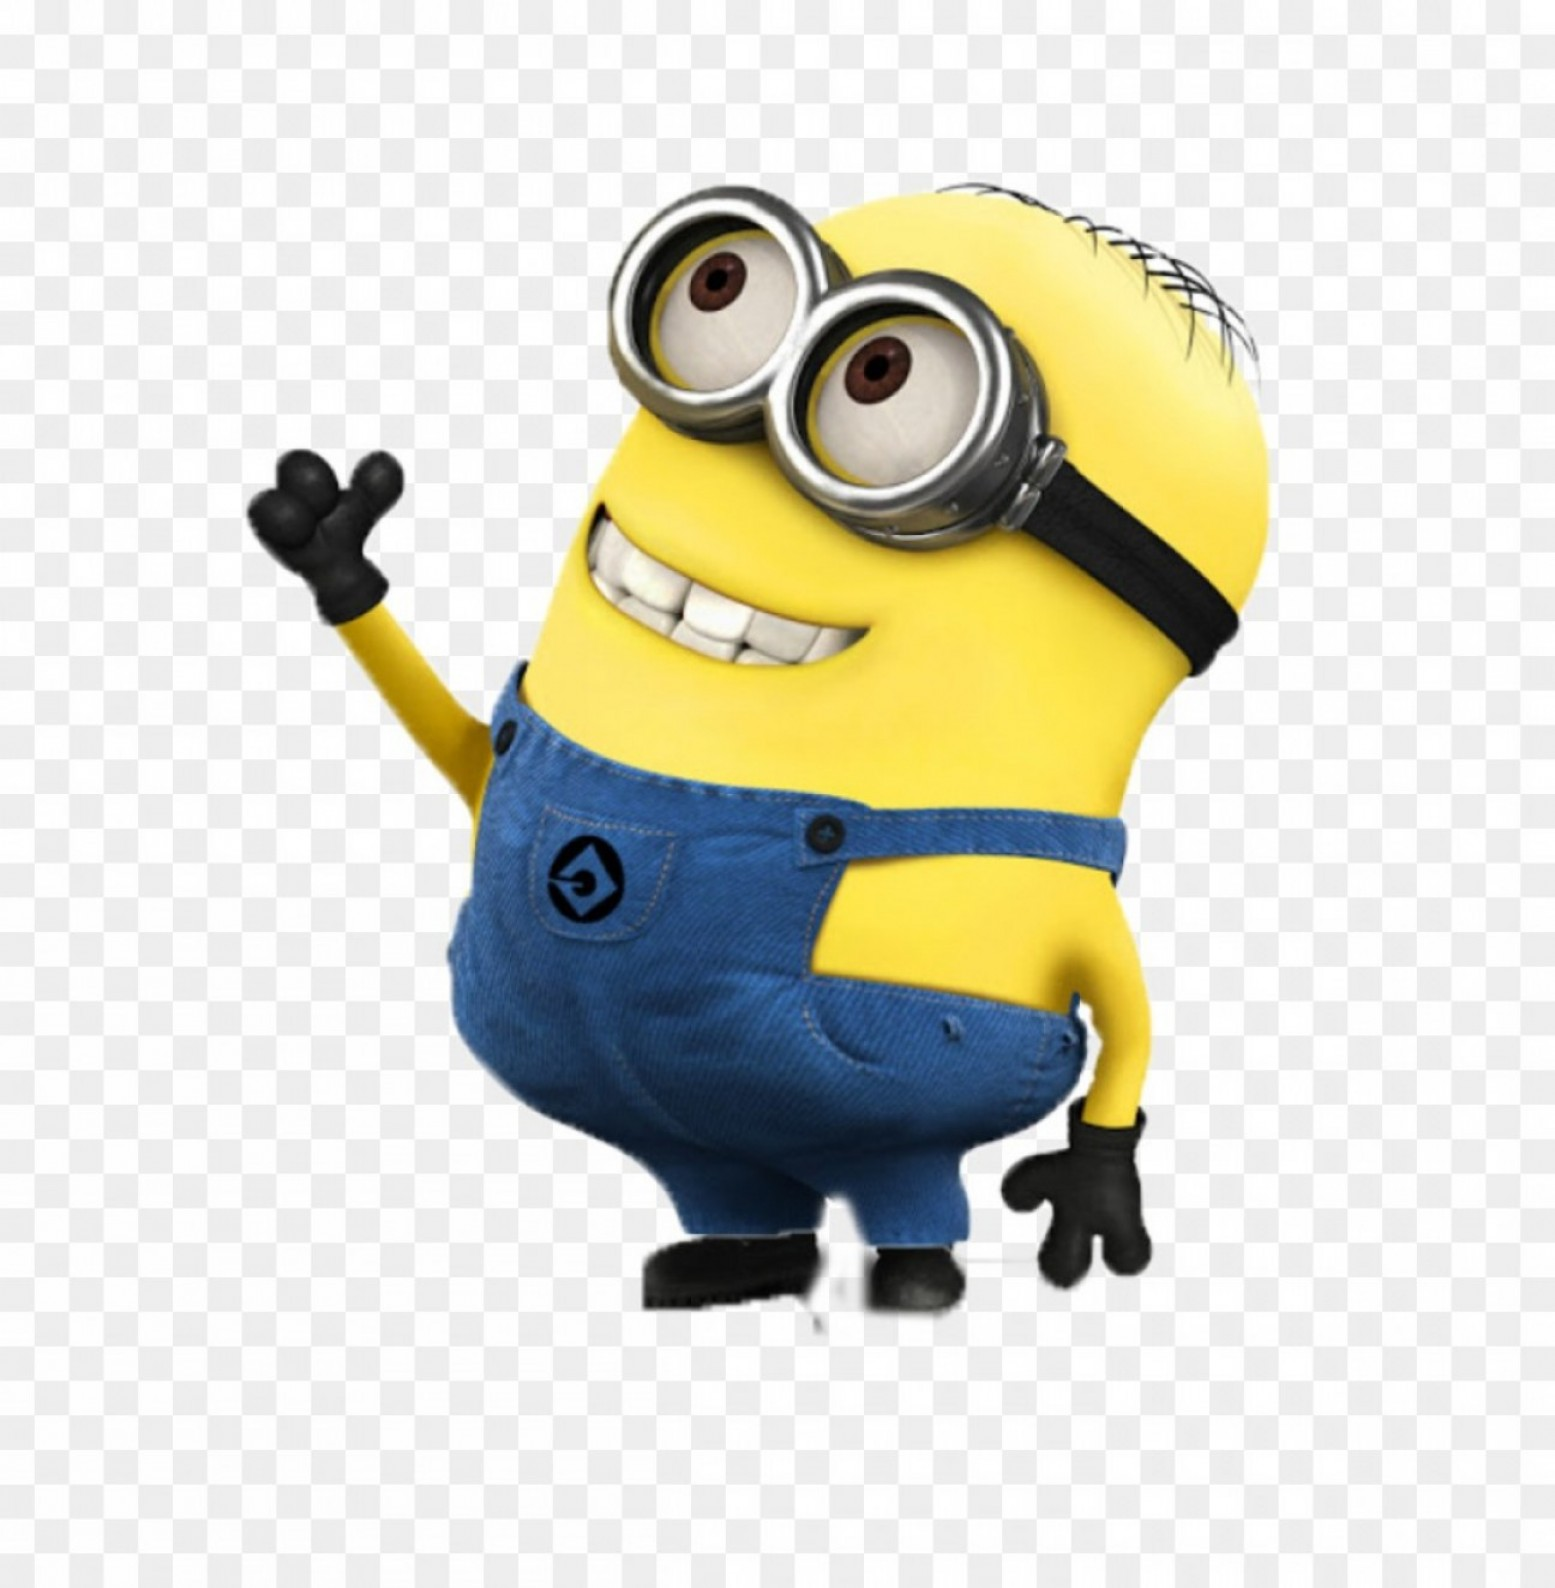 Animated Despicable Me Vector: Despicable Me Vector Magnitude And Direction Gif